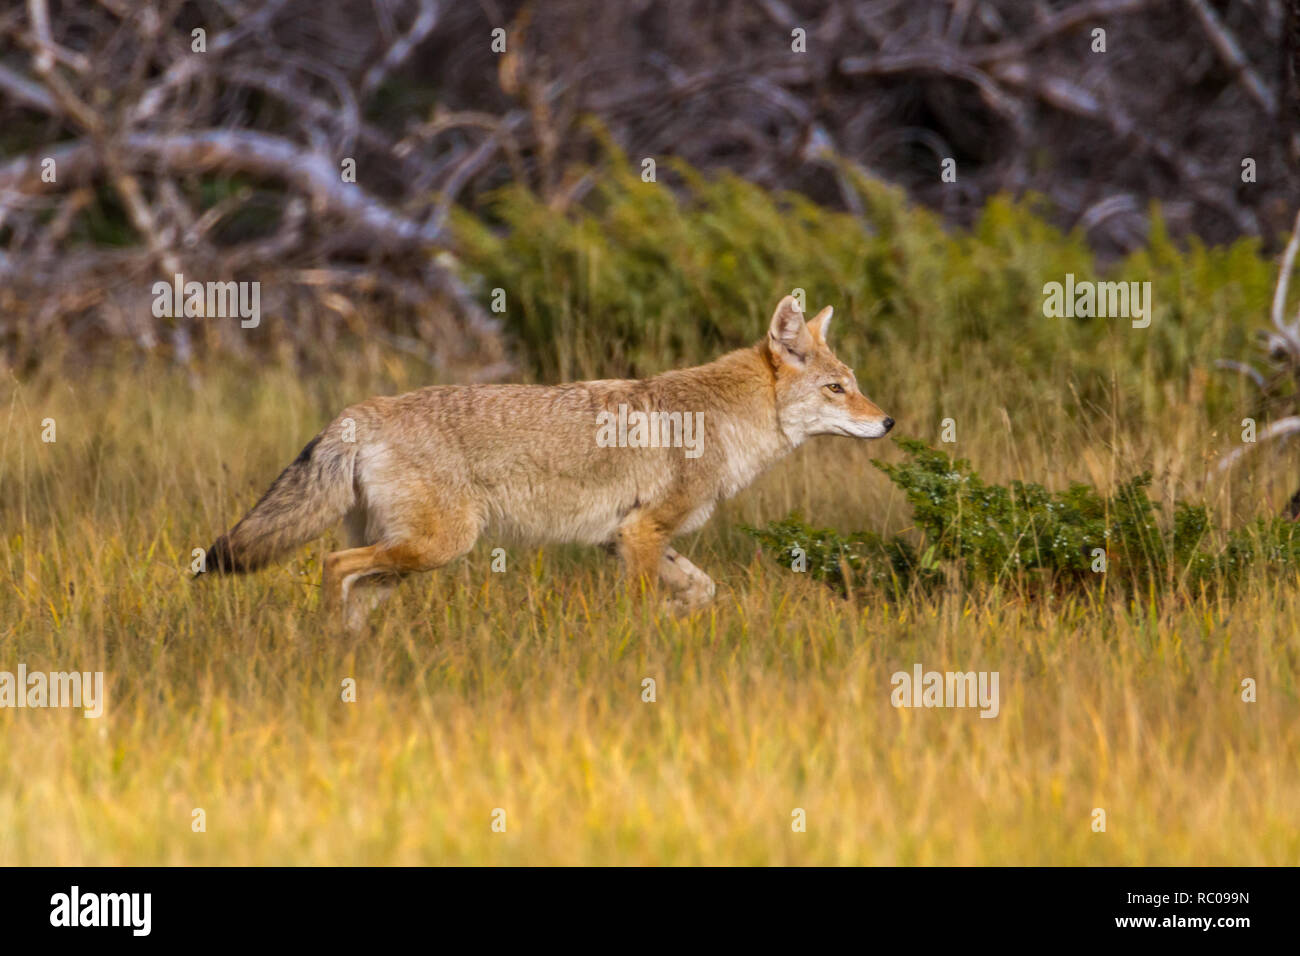 Side view of wild coyote moving through grass near trees as it travels in Banff National Park in evening light. - Stock Image